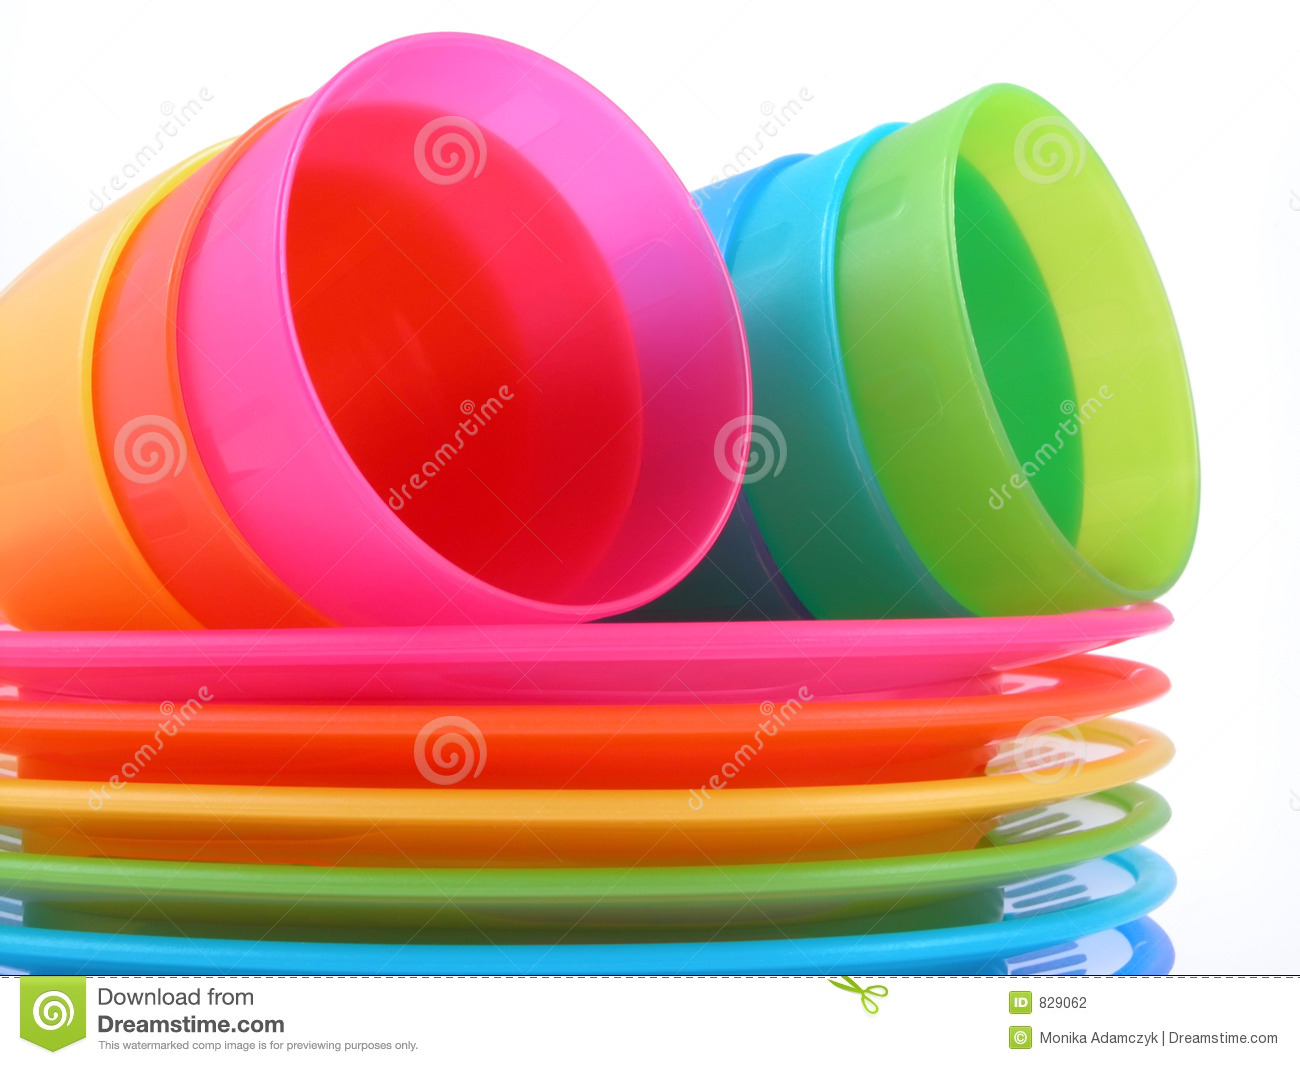 Plastic cups and plates